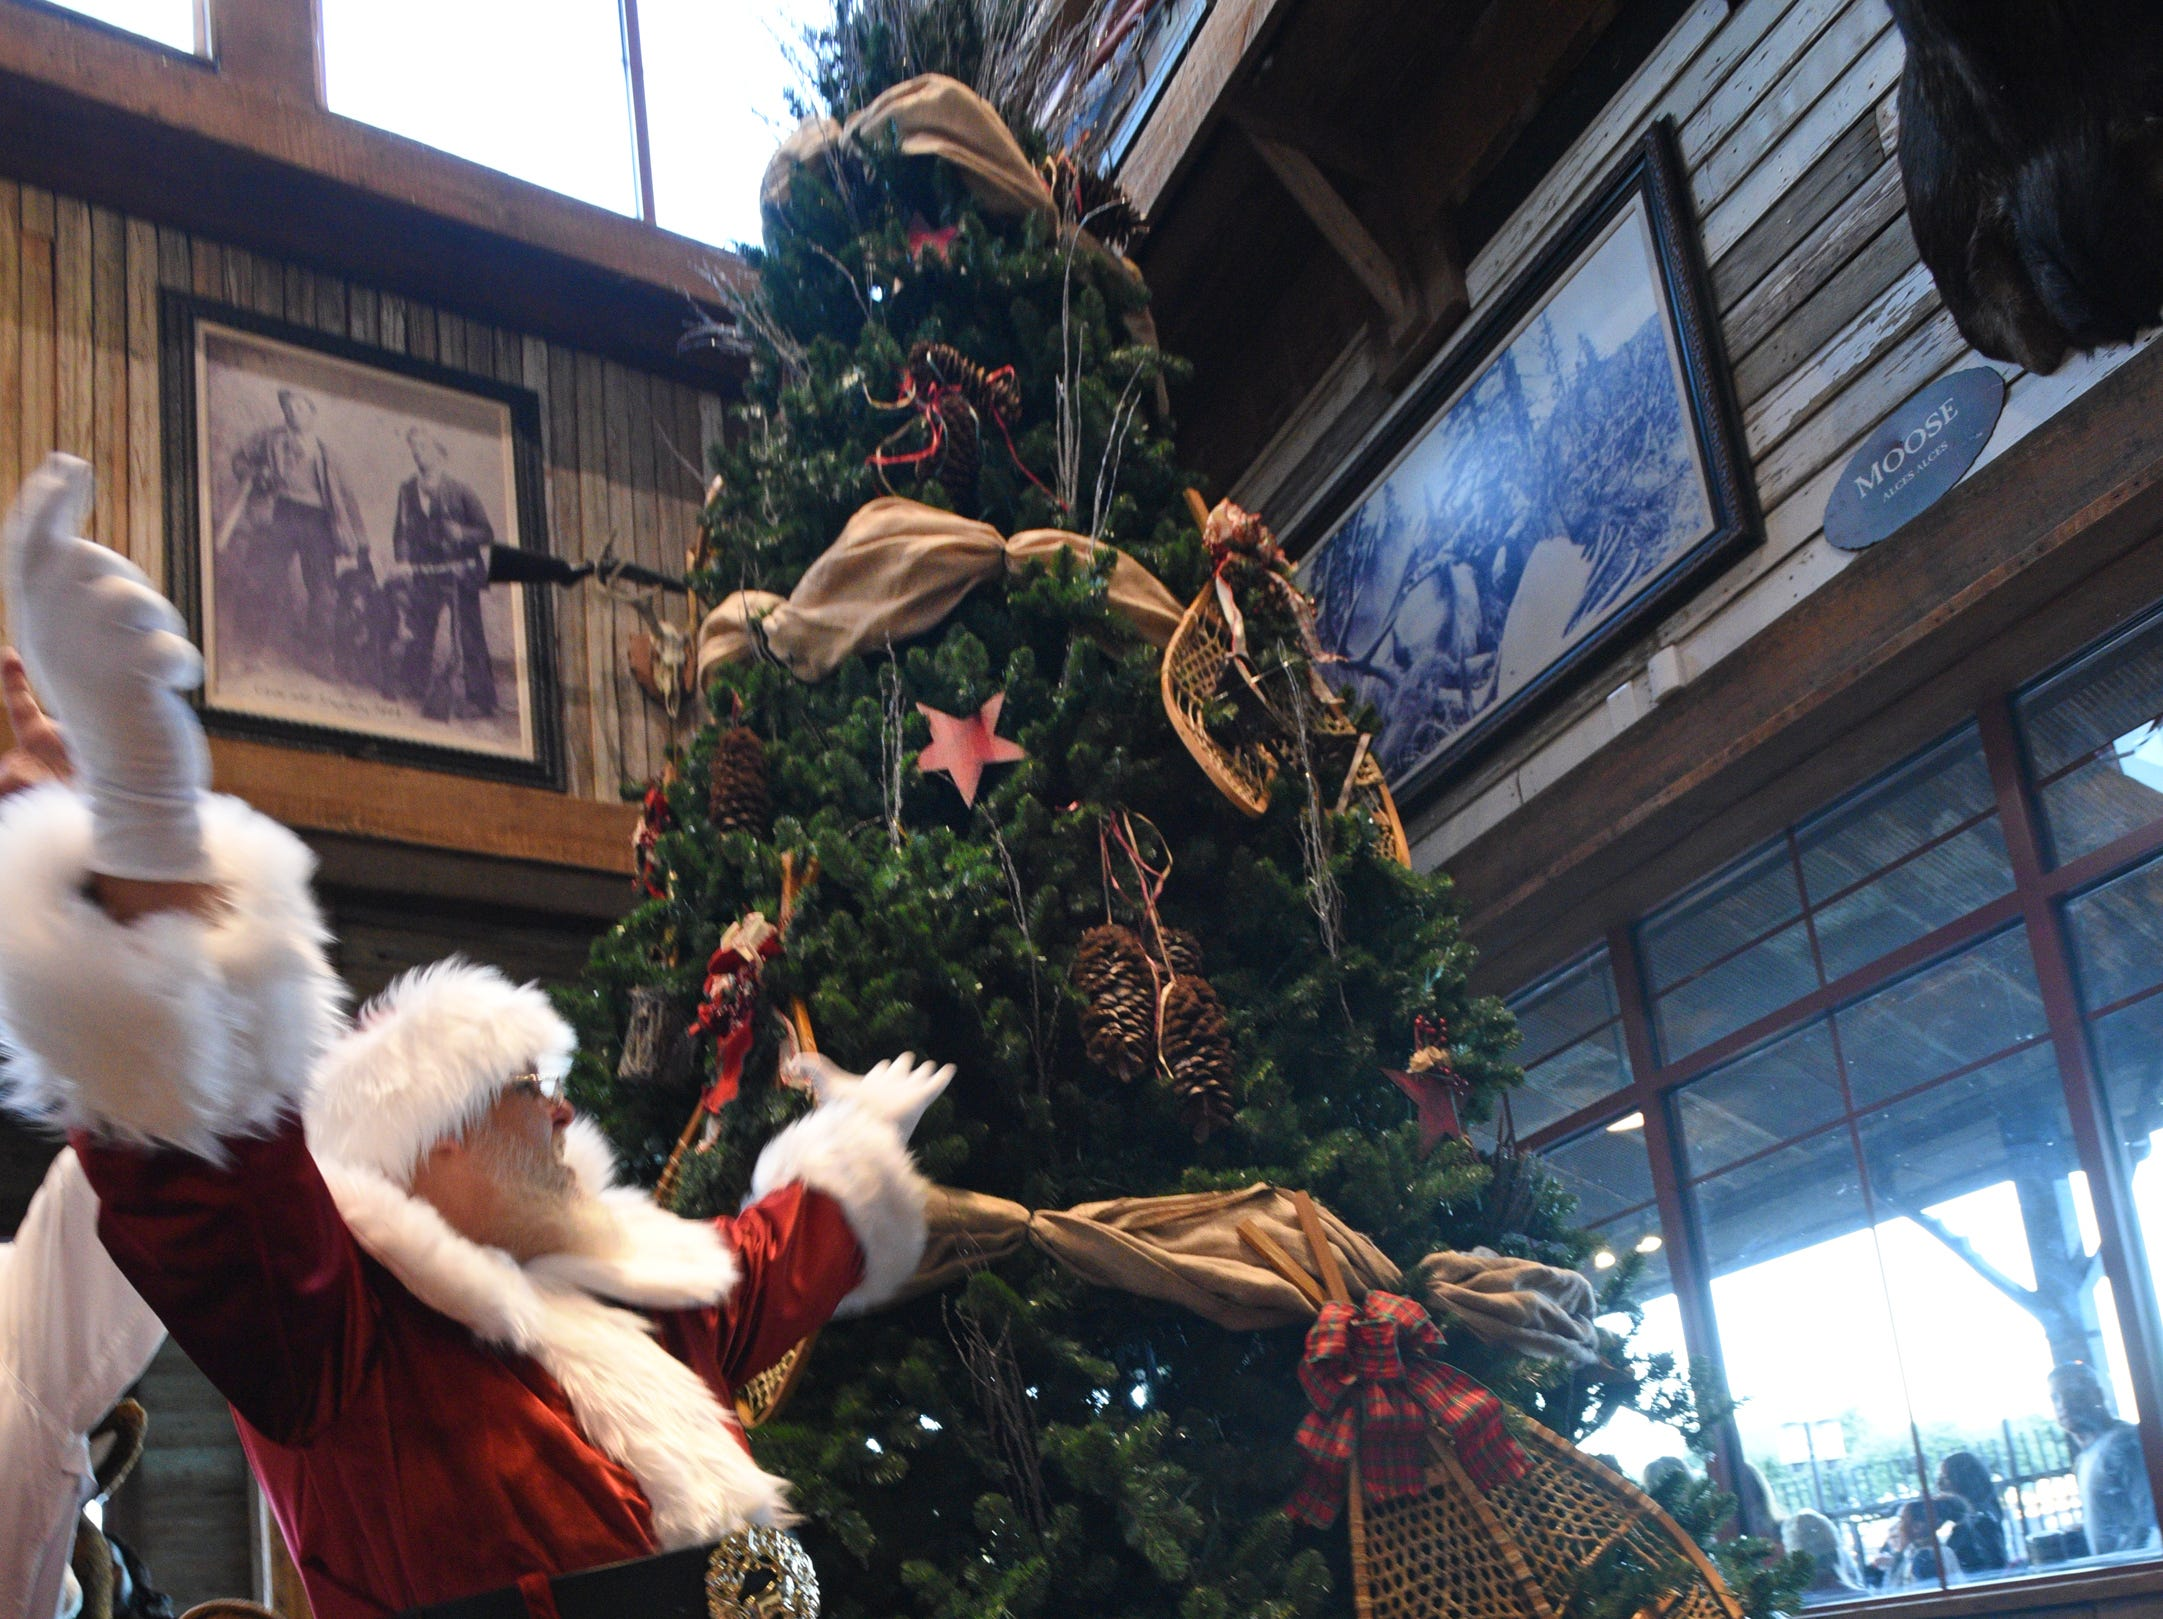 Santa prepares to light the Christmas tree after the Bass Pro Shops-Louisiana Boardwalk Outlets Santa Parade.